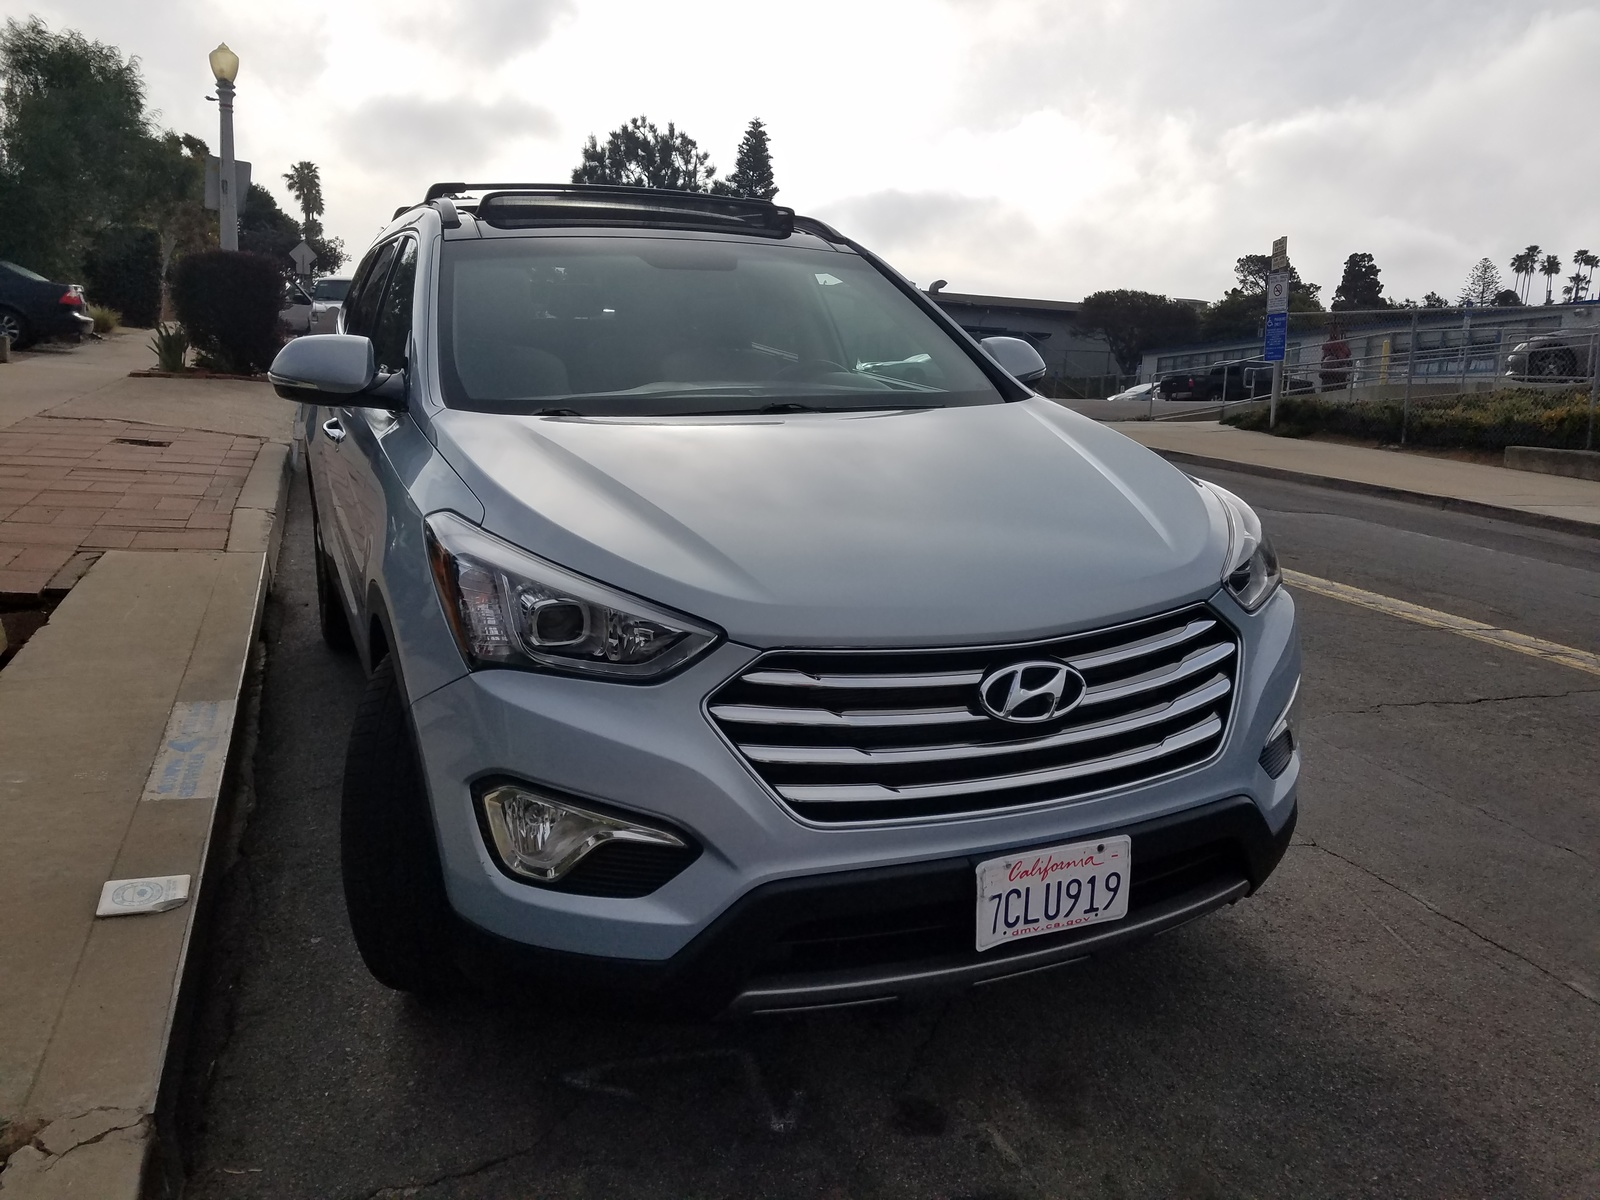 cars santa santafe main fe trends first drive hyundai digital impressions sport